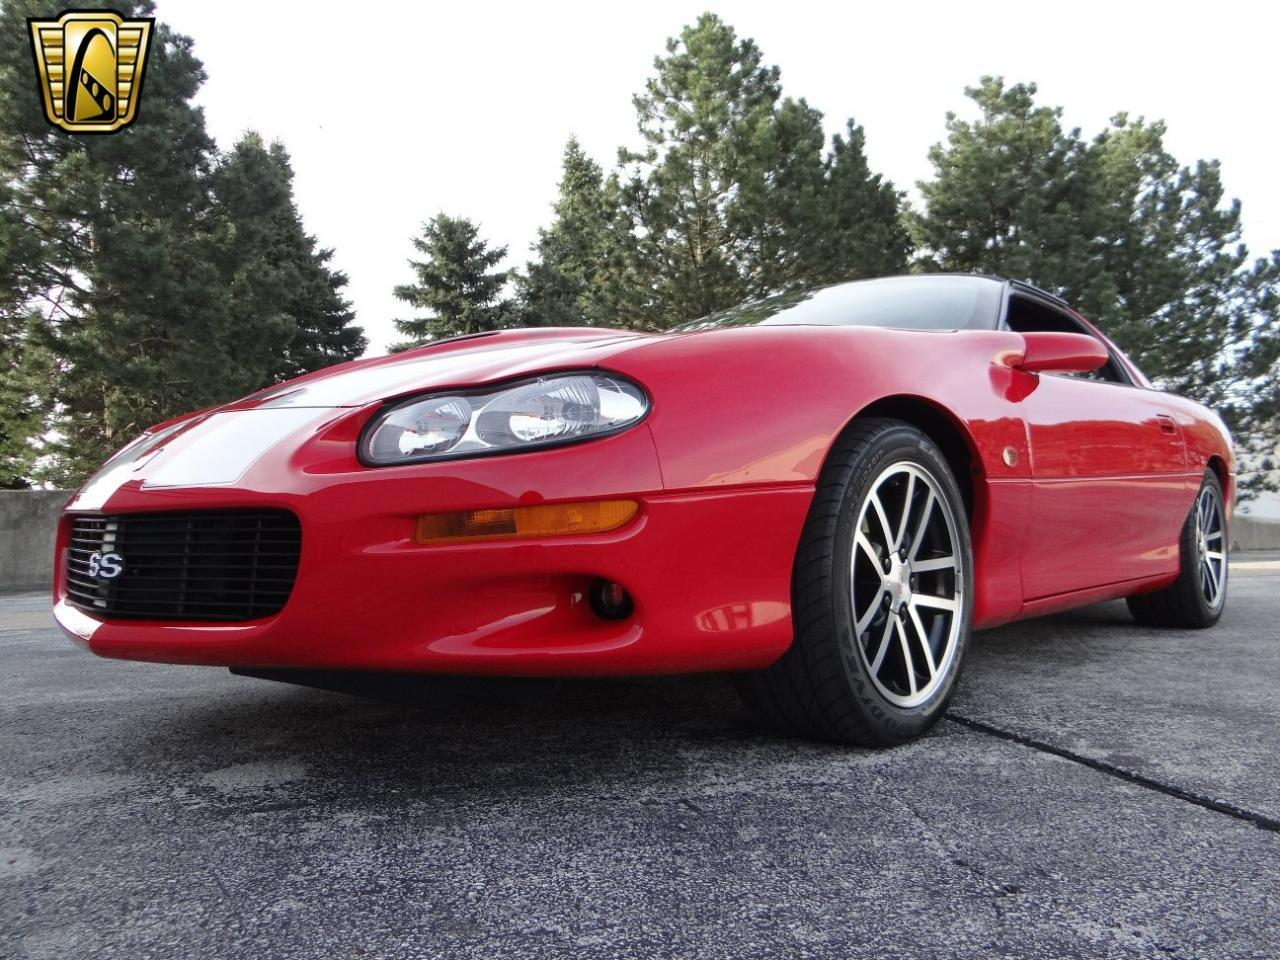 Large Picture of '02 Camaro located in Illinois Offered by Gateway Classic Cars - Chicago - L44H